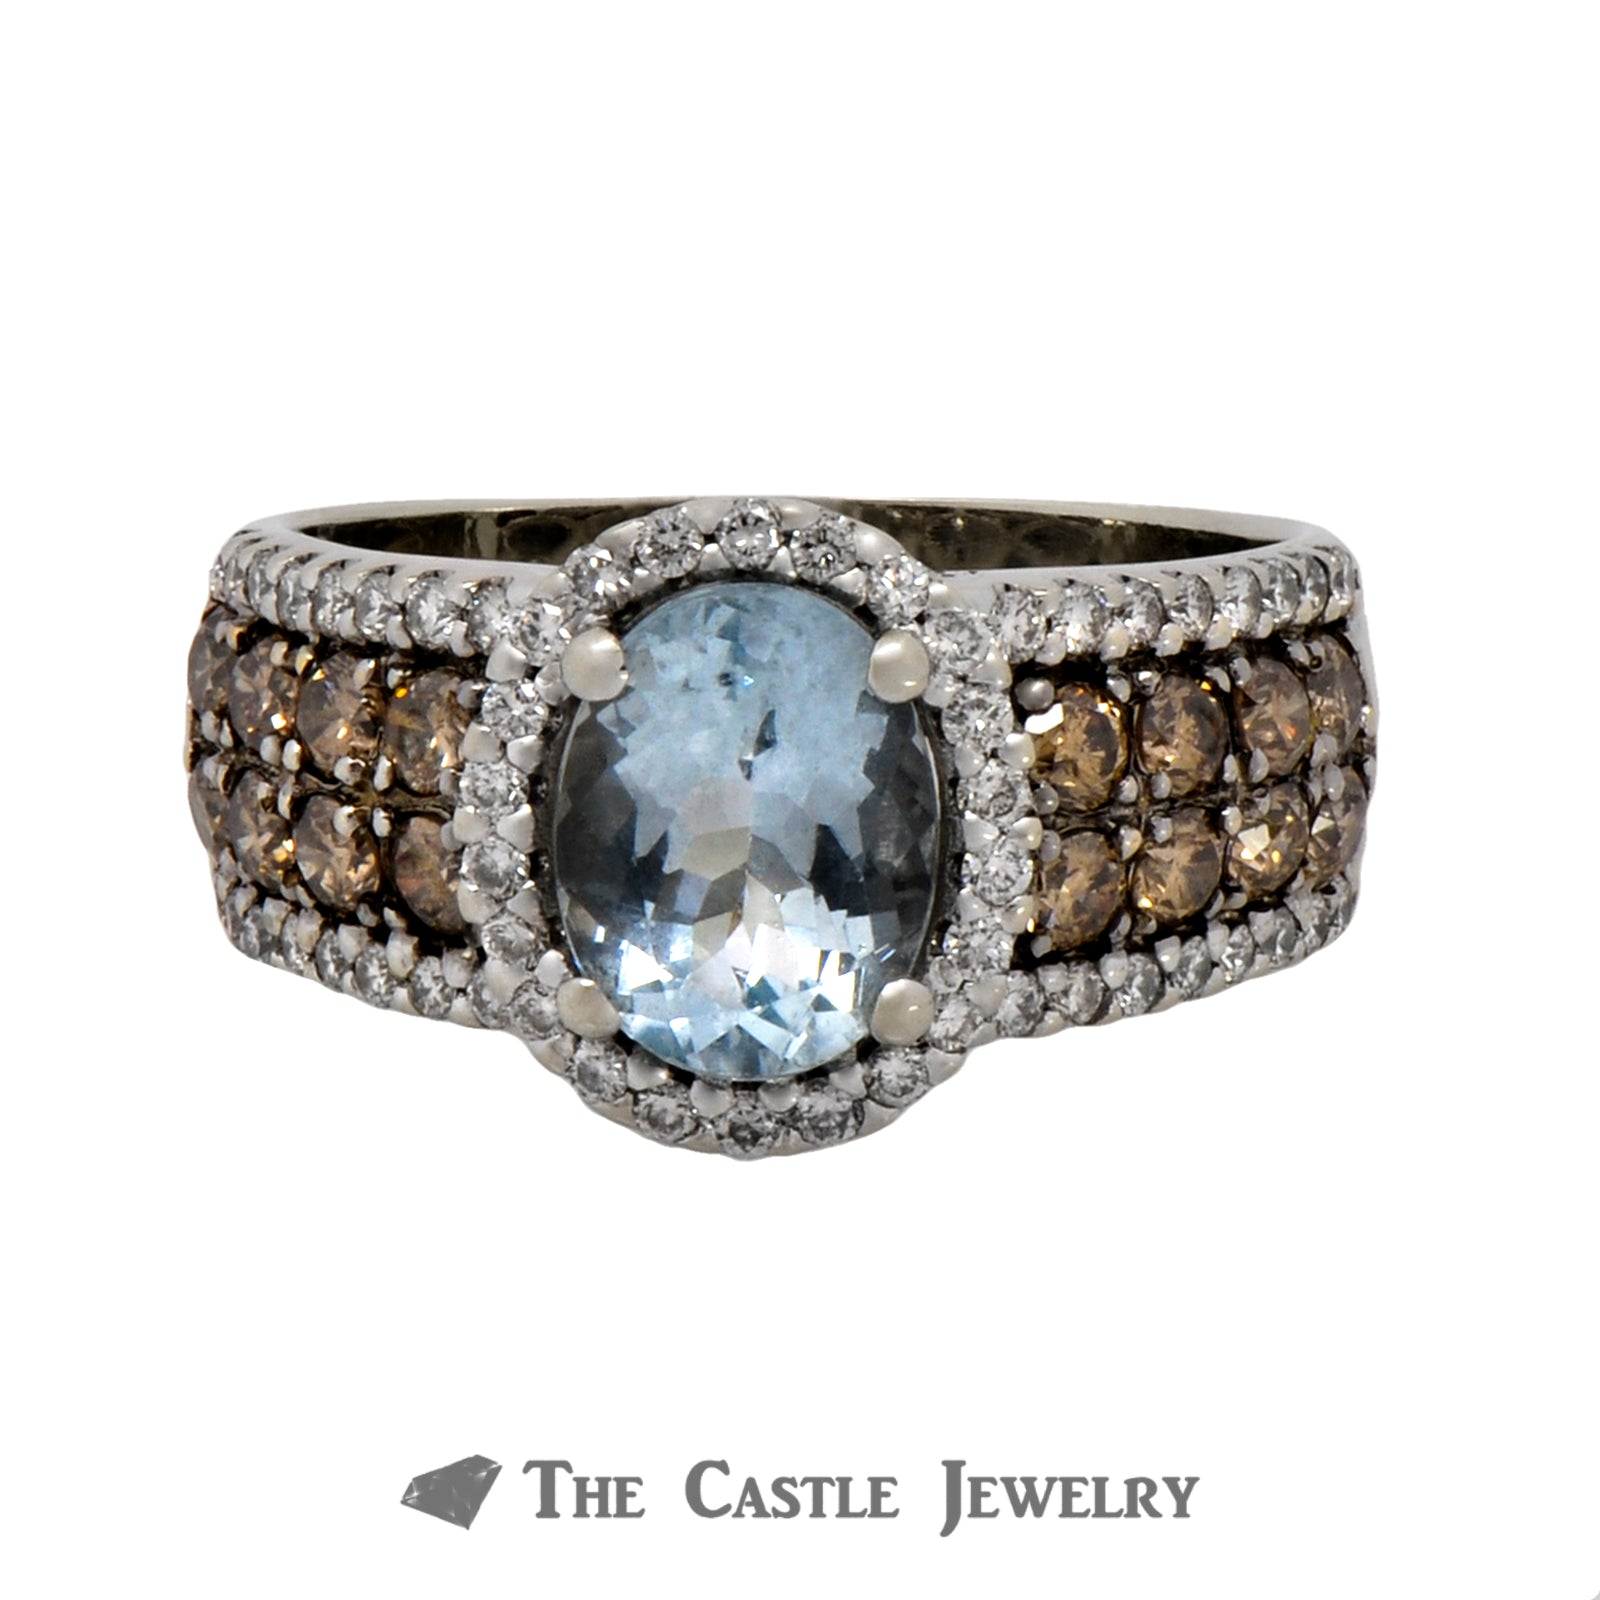 Le Vian Oval Aquamarine Ring with Diamond Halo and Chocolate & White Diamond Accents